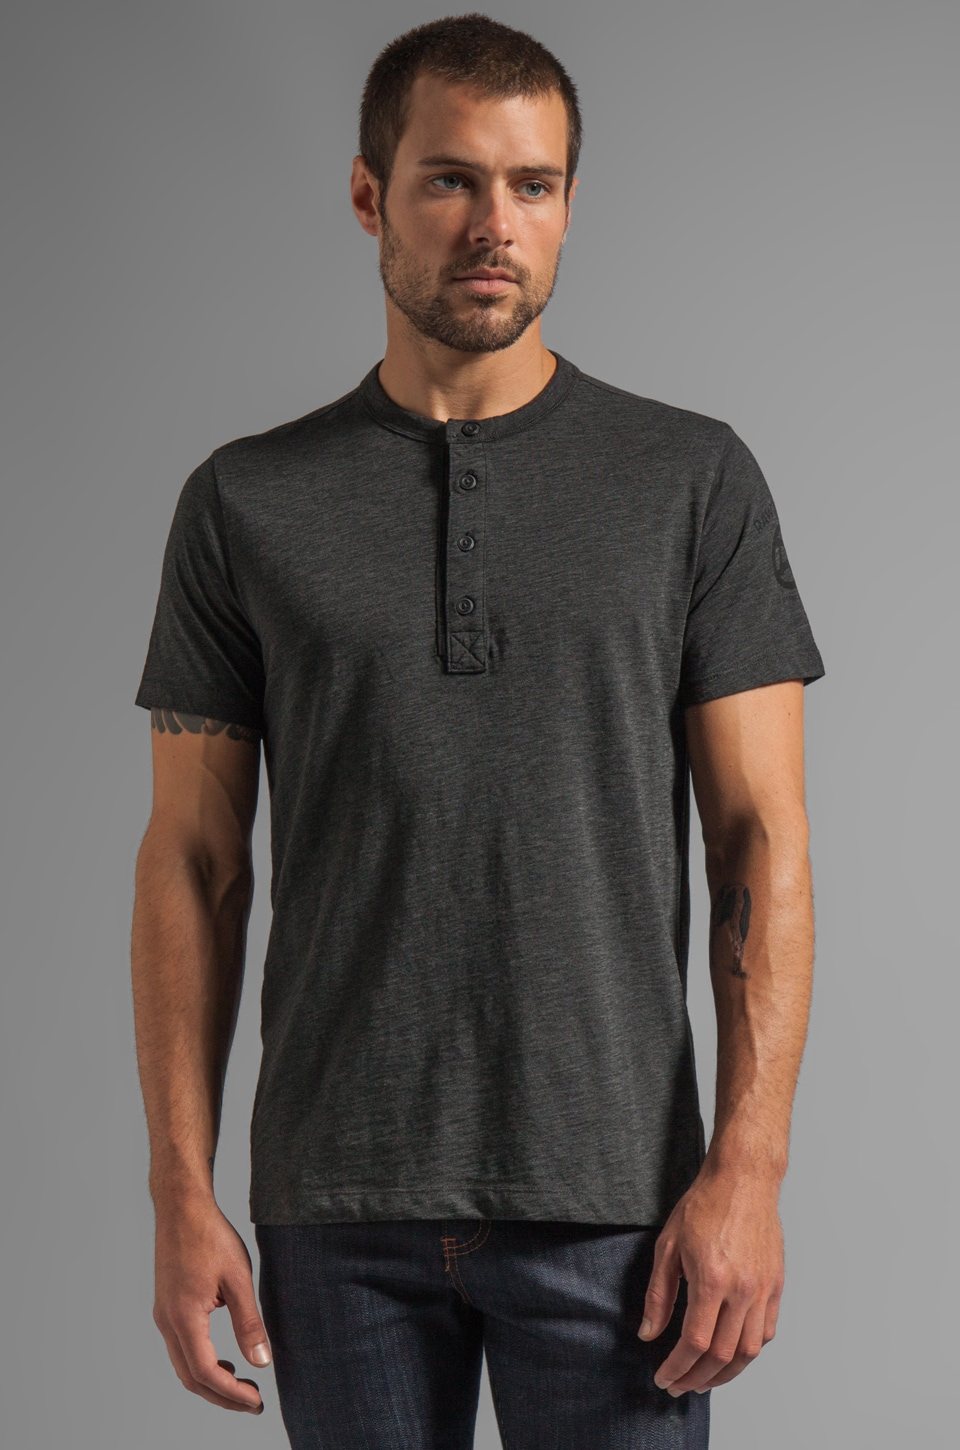 G-Star Miller Granddad Short Sleeve Tee in Black